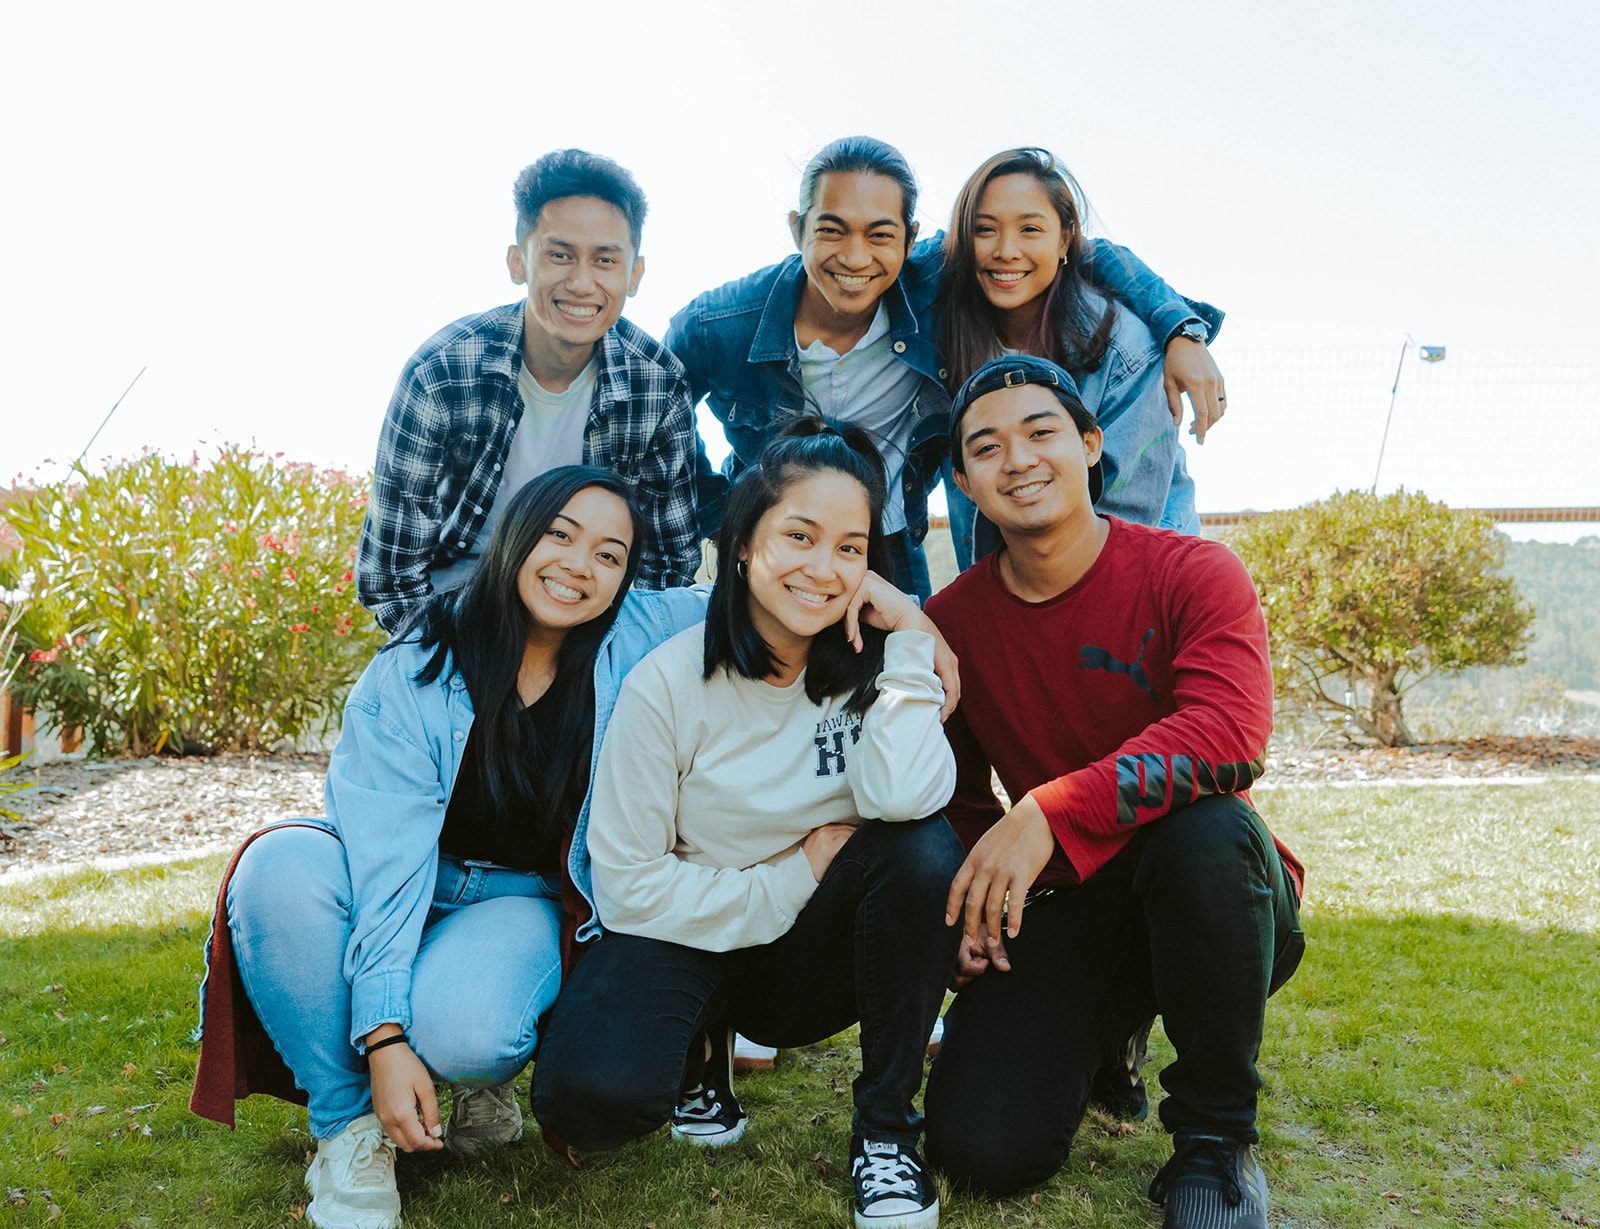 This is an image of the whole Belugabee team. Two girls and one boy are knelt at the front and two boys and one girl are stood at the back. They are all dressed in casual clothing and have taken the photo in a field.